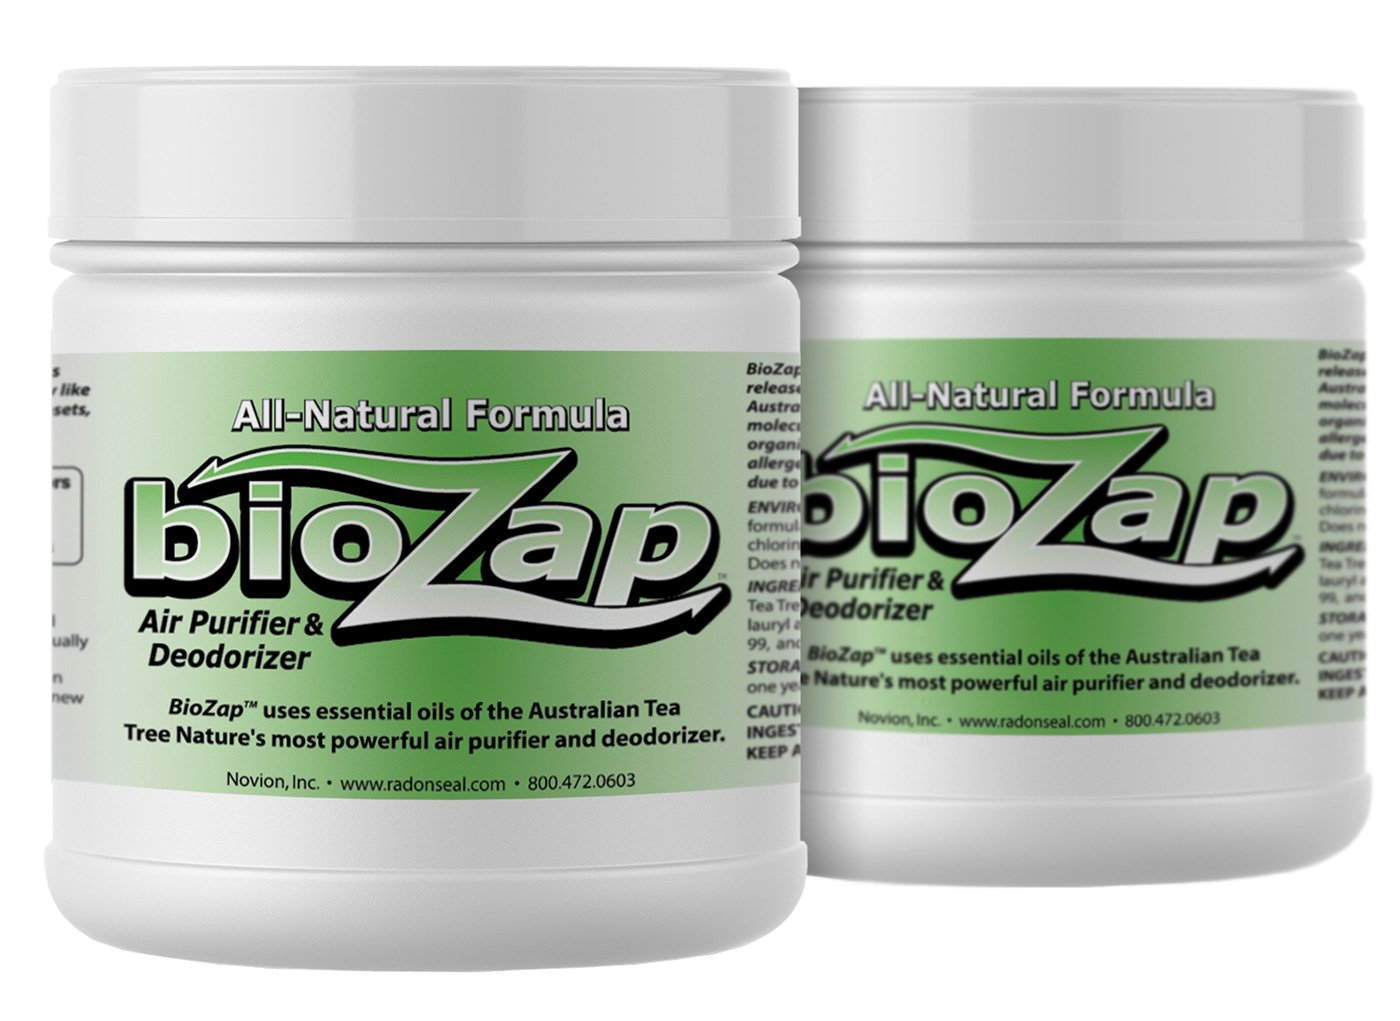 RadonSeal BioZap Air Purifier & Deodorizer 2-Pack | Pharmaceutical-Grade Australian Tea-Tree Oil | Naturally Cleans Odors | Basements, Crawlspaces, Boats, Gyms & More | Natural Scent by RadonSeal